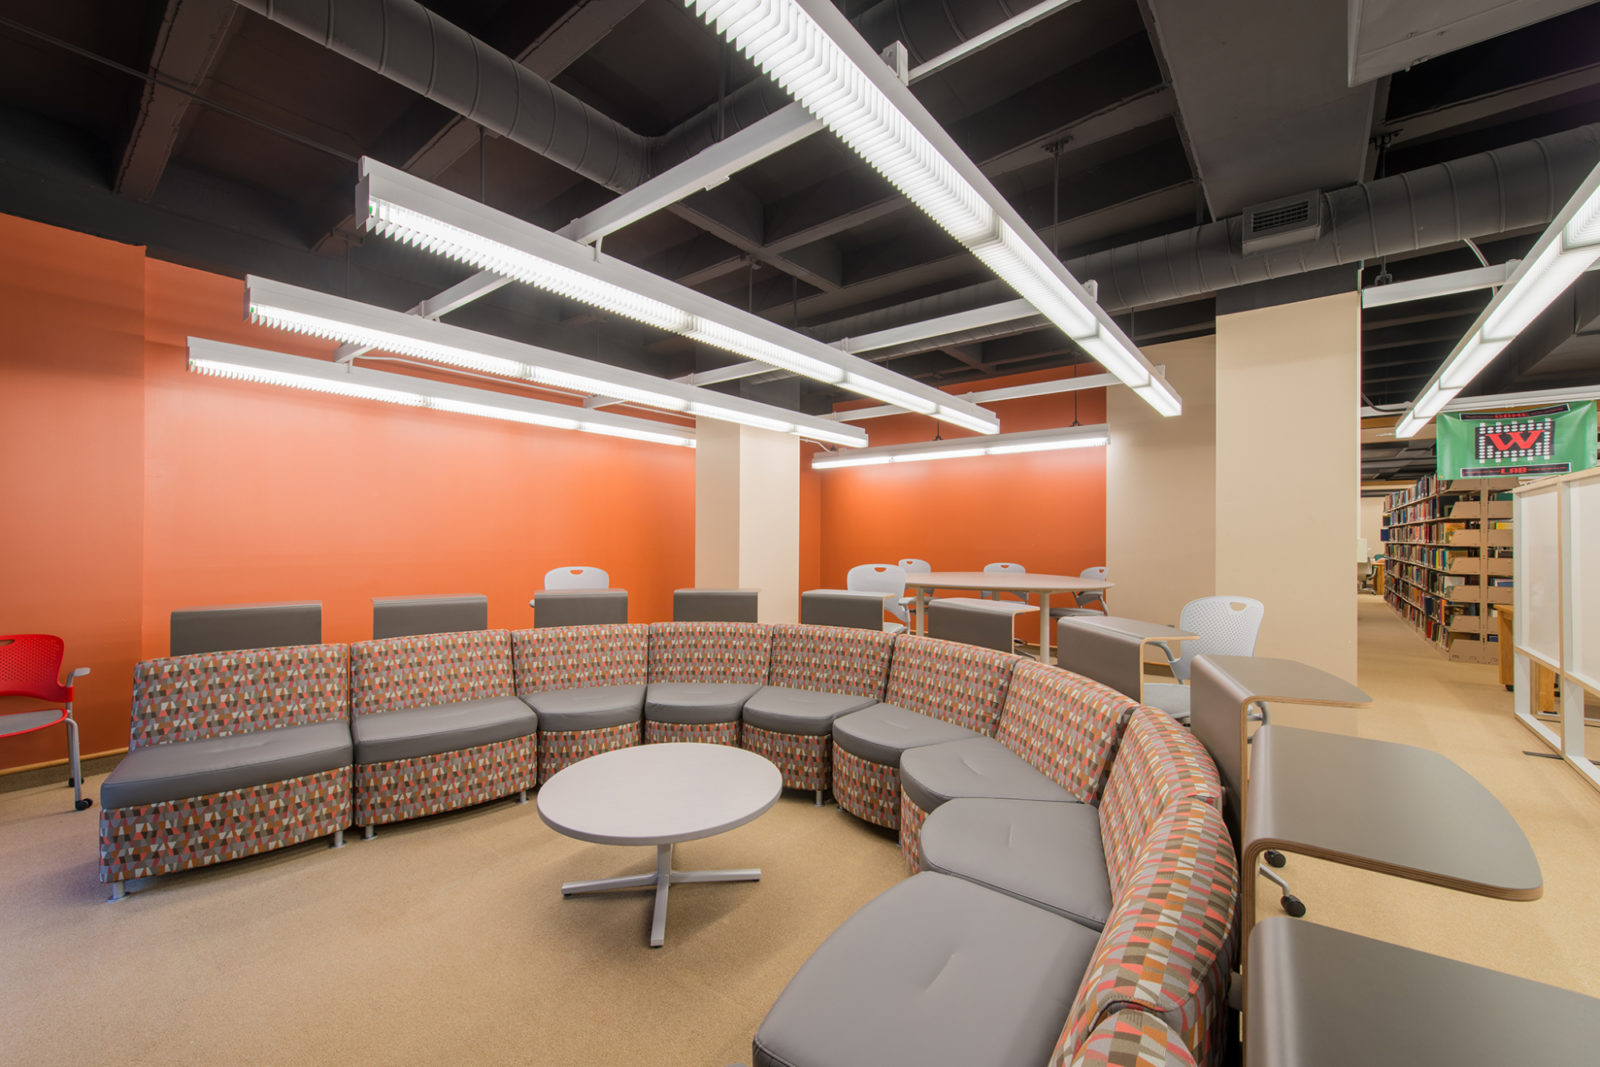 Wabash Project Highlight: Horseshoe discussion seating space